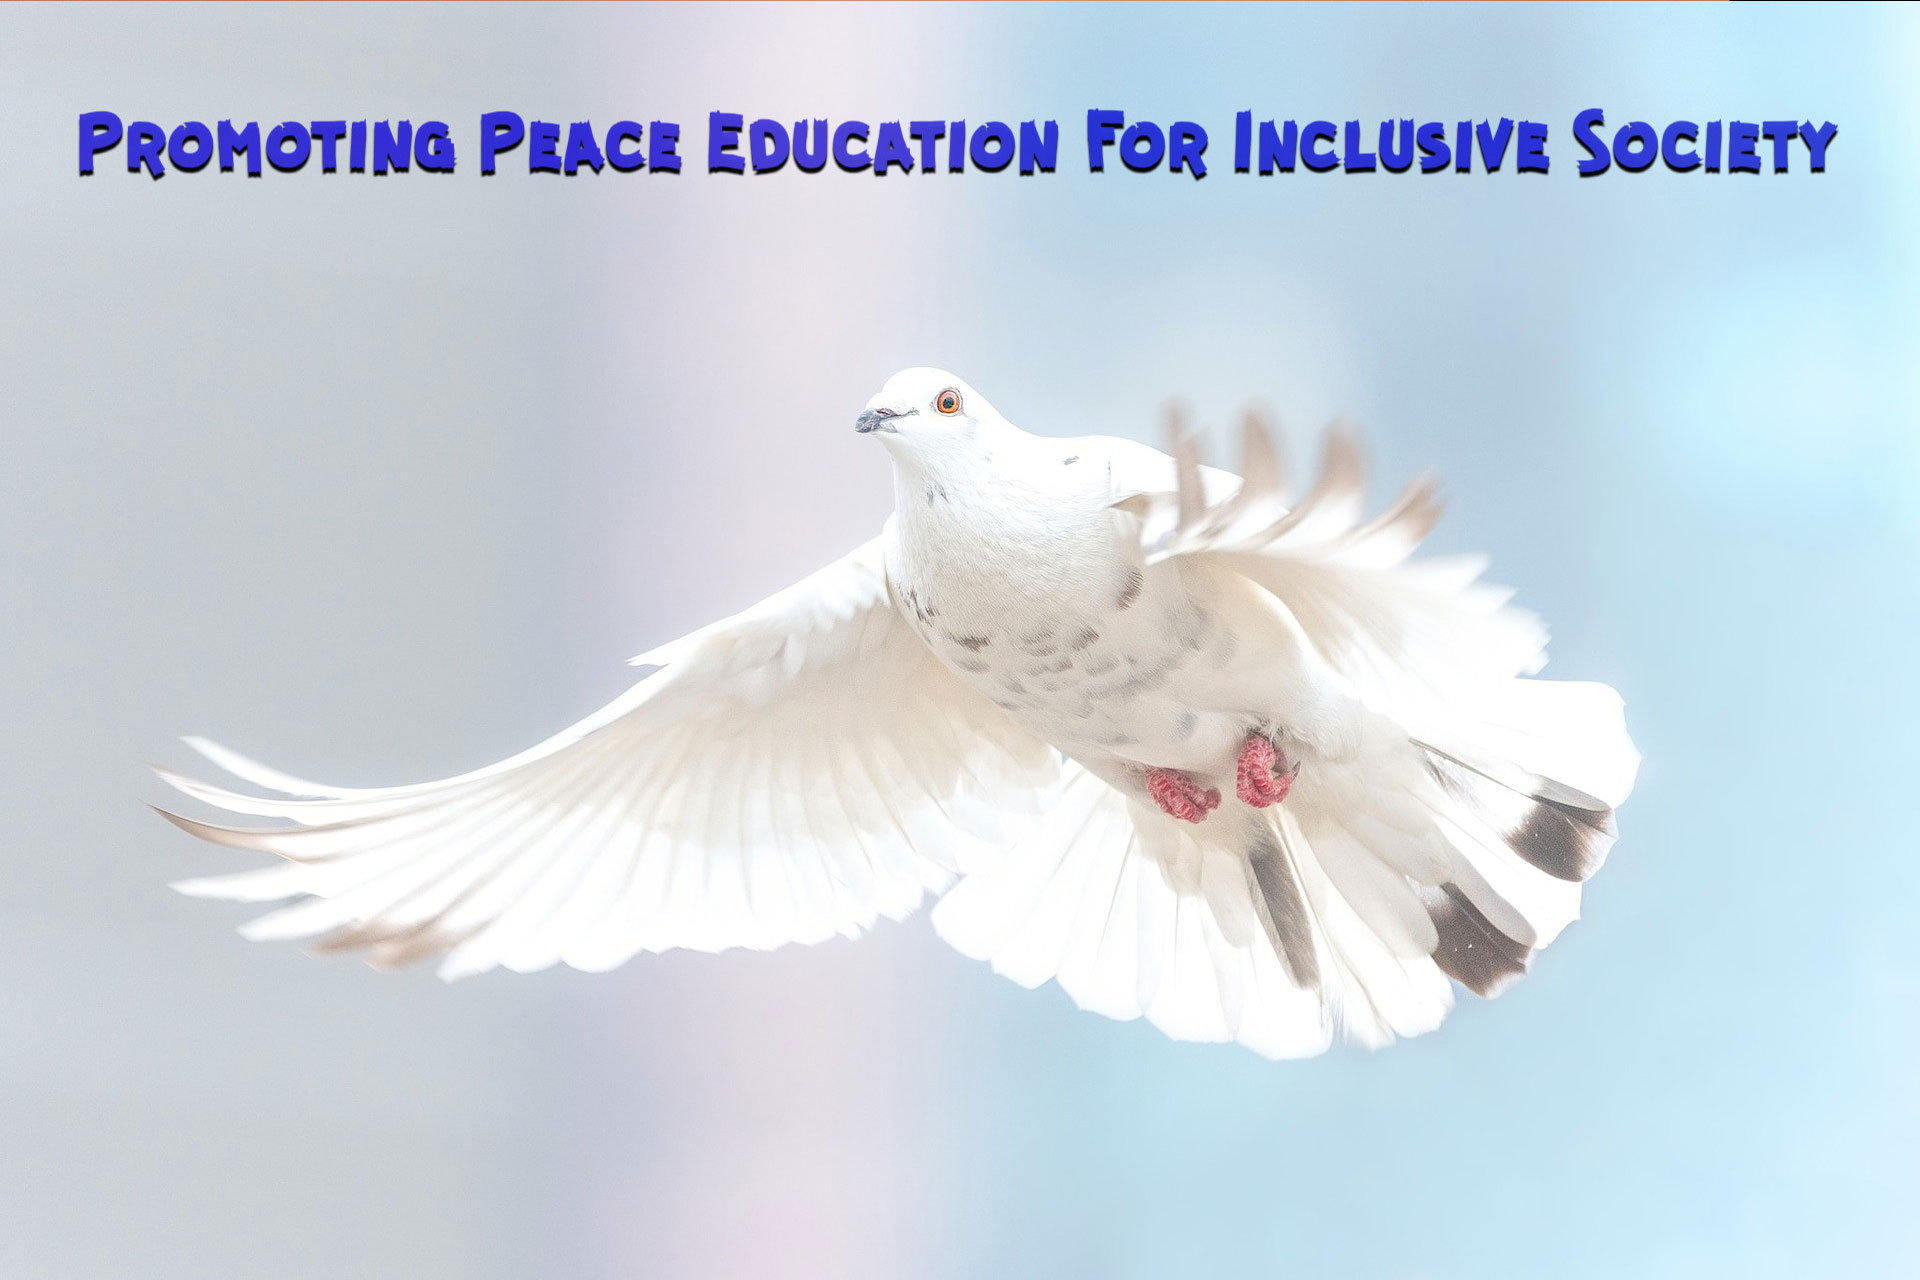 promoting-peace-education